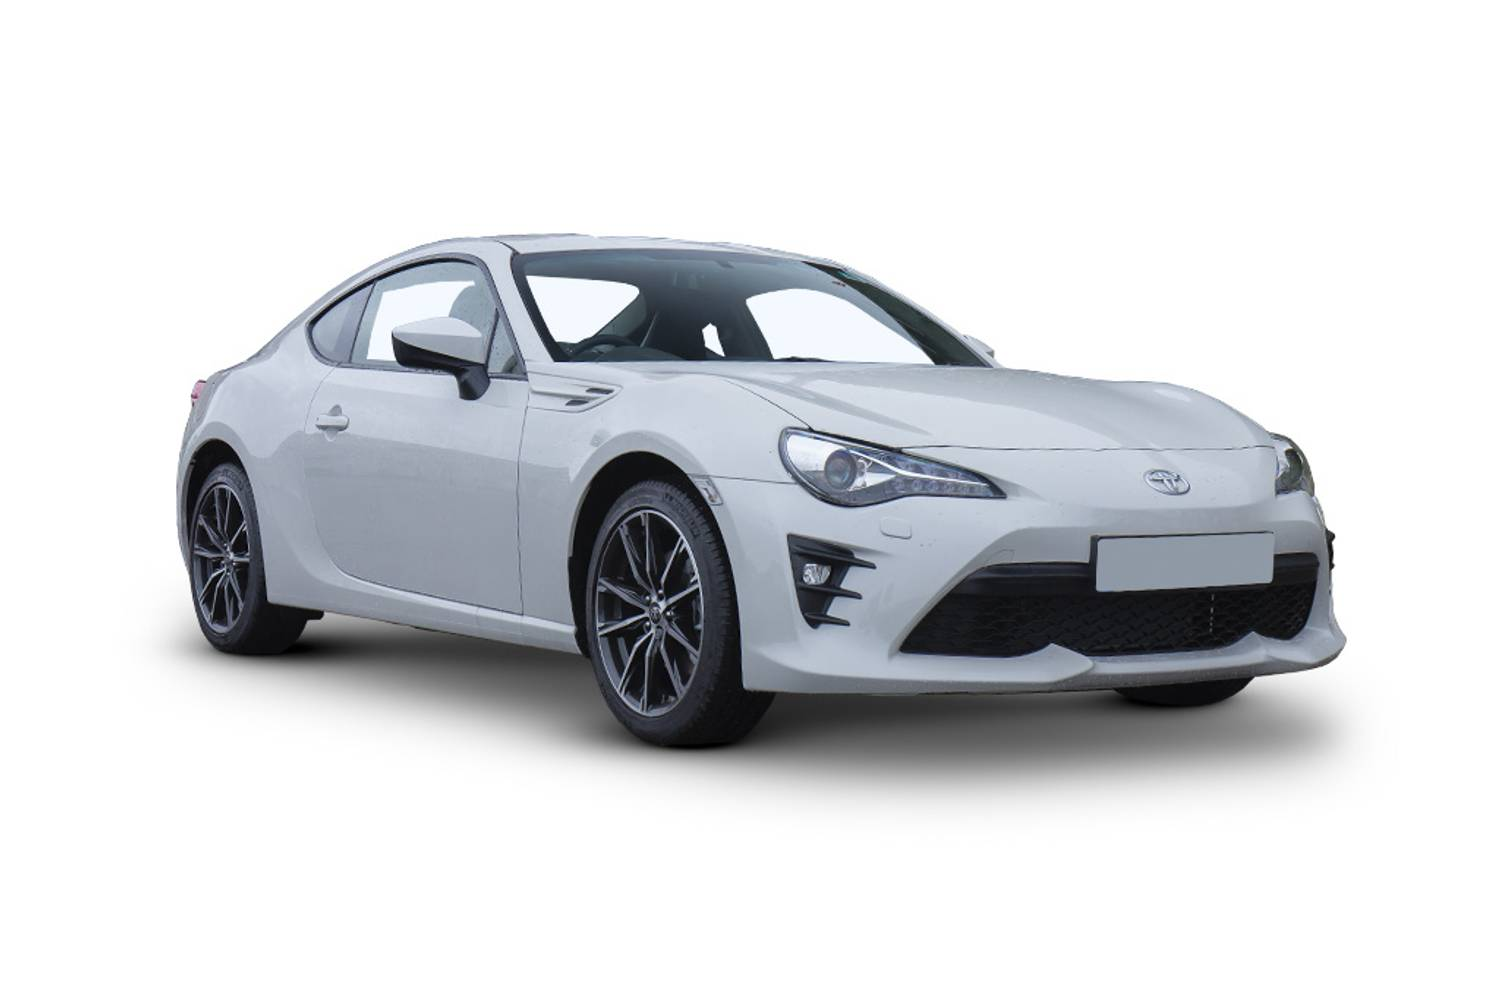 Toyota GT86 Coupe 2.0 D-4S 2dr Front Three Quarter